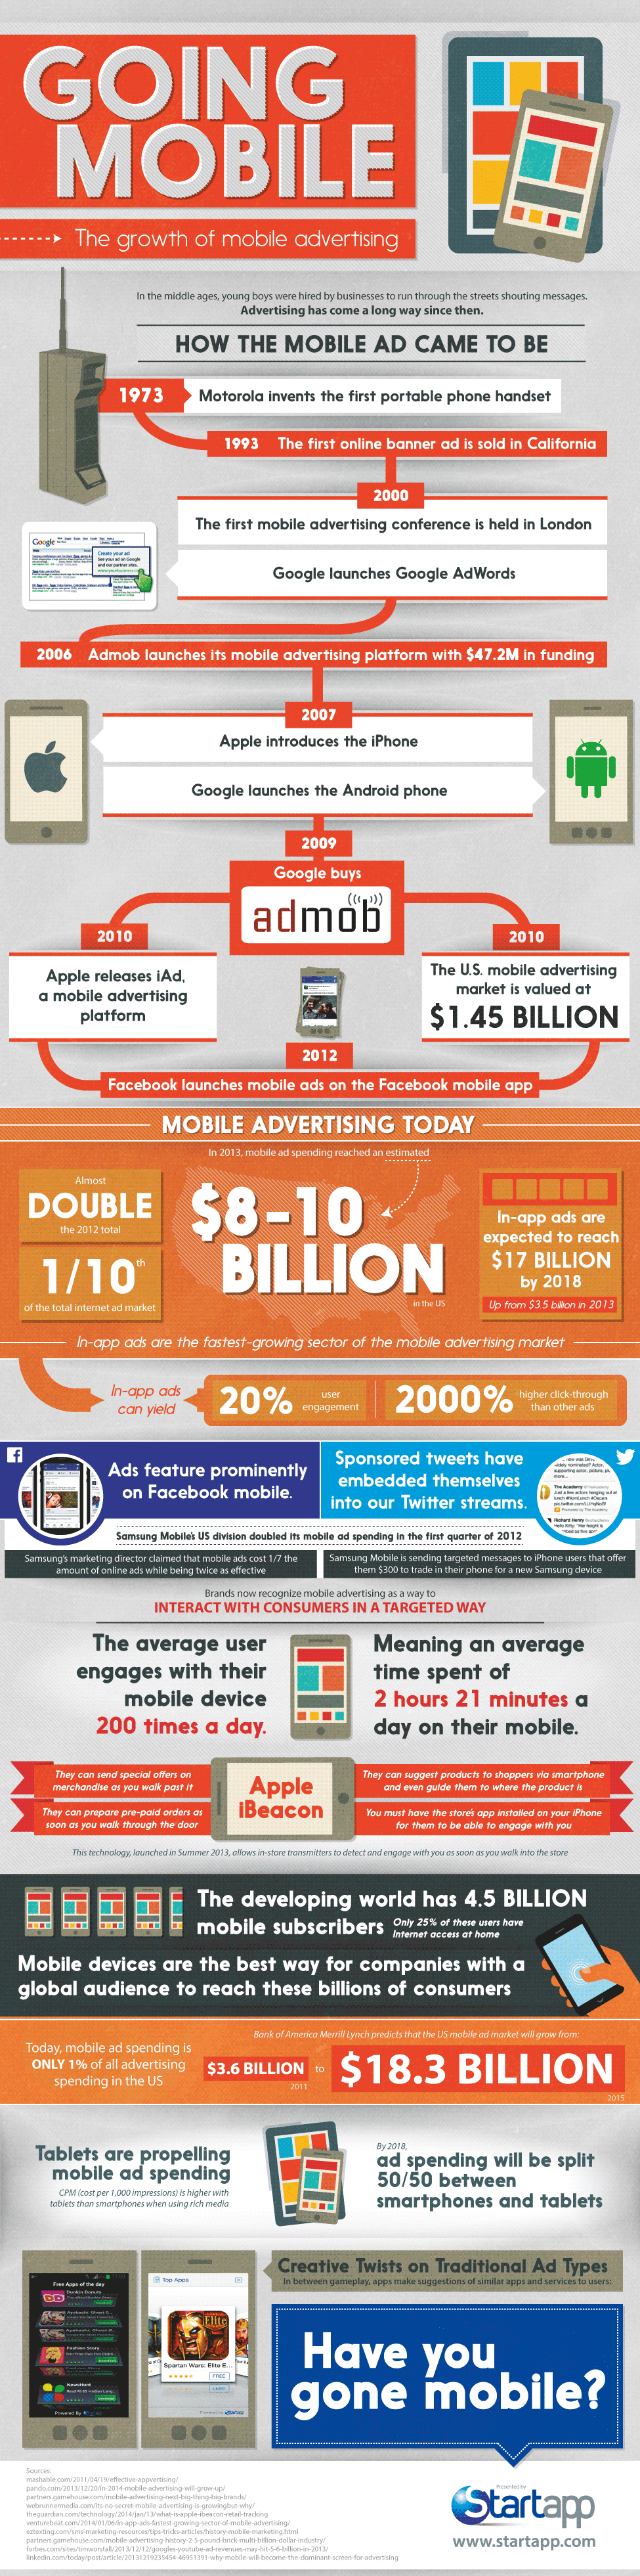 Going Mobile: The Growth of Mobile Advertising